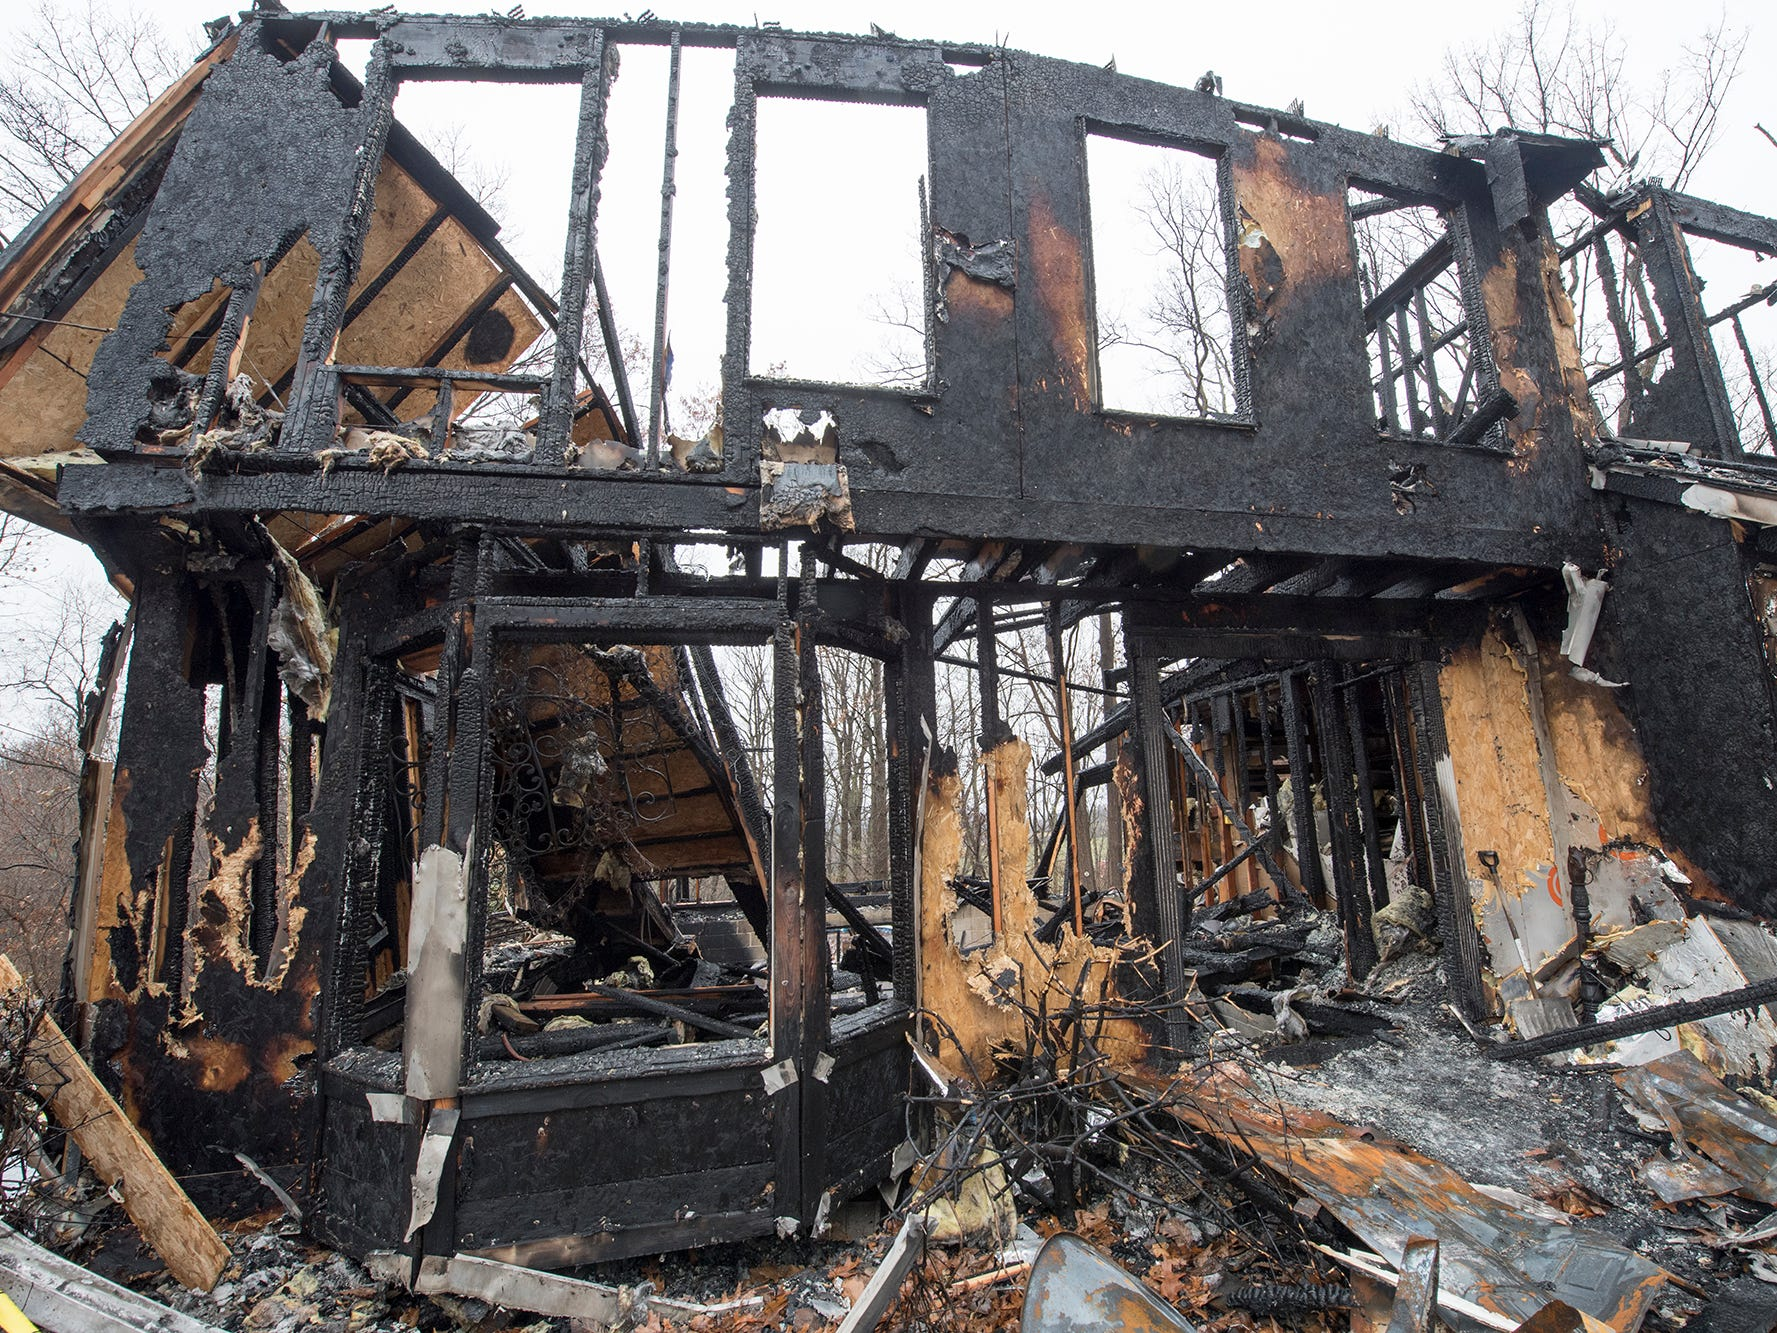 The front of Melissa Herren's home with the front doorway in the bottom center that helped guide her to daylight during the fire.